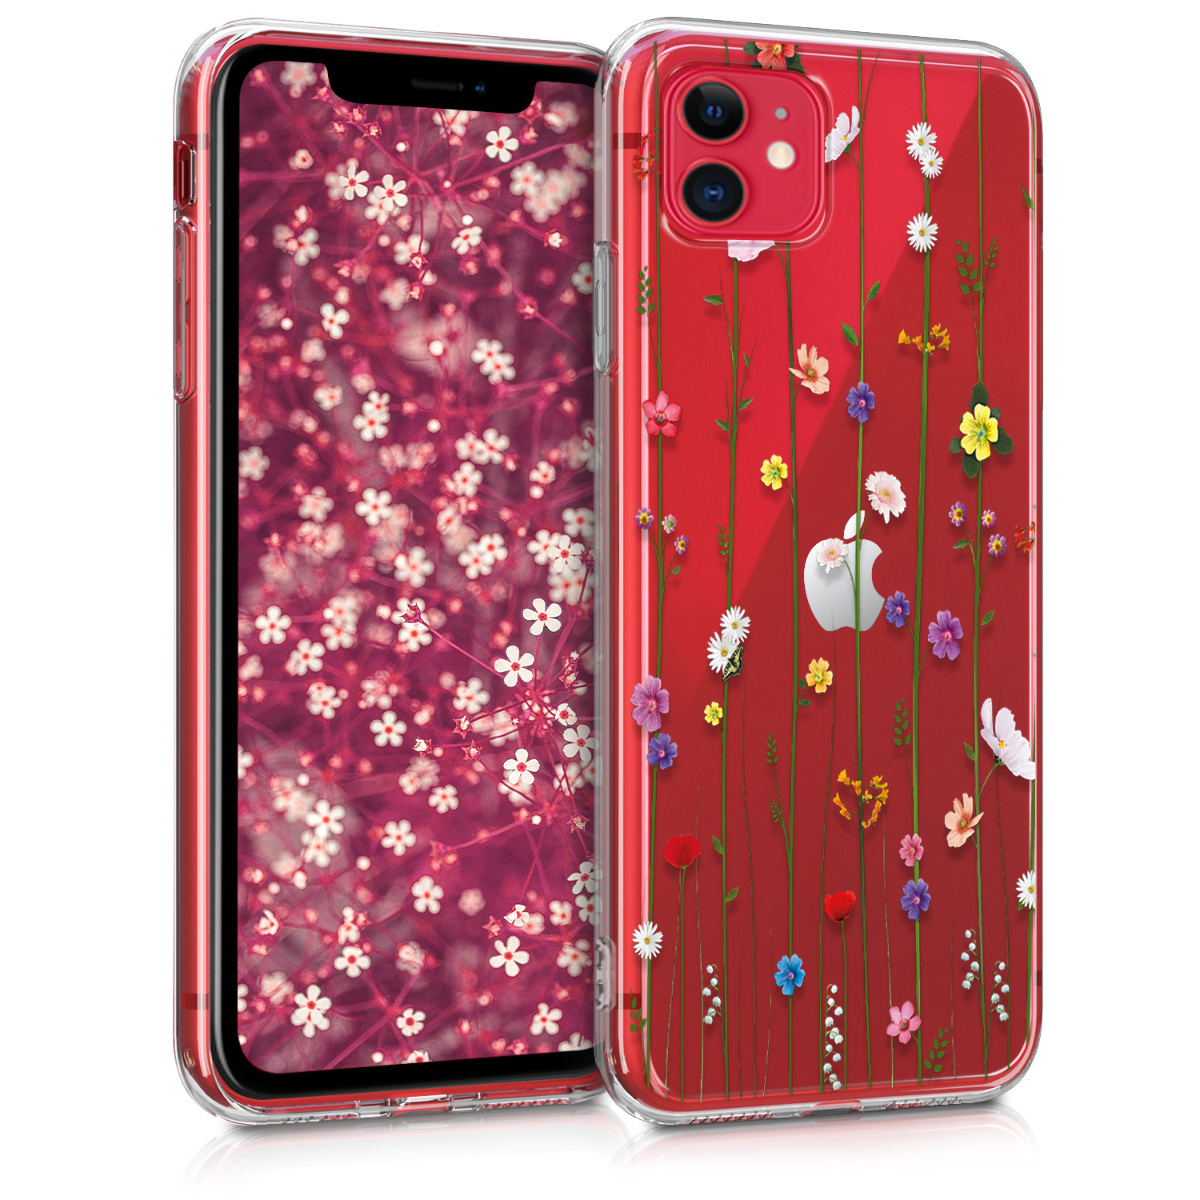 KW Θήκη Σιλικόνης iPhone 11 - Multicolor / Transparent (49793.05)